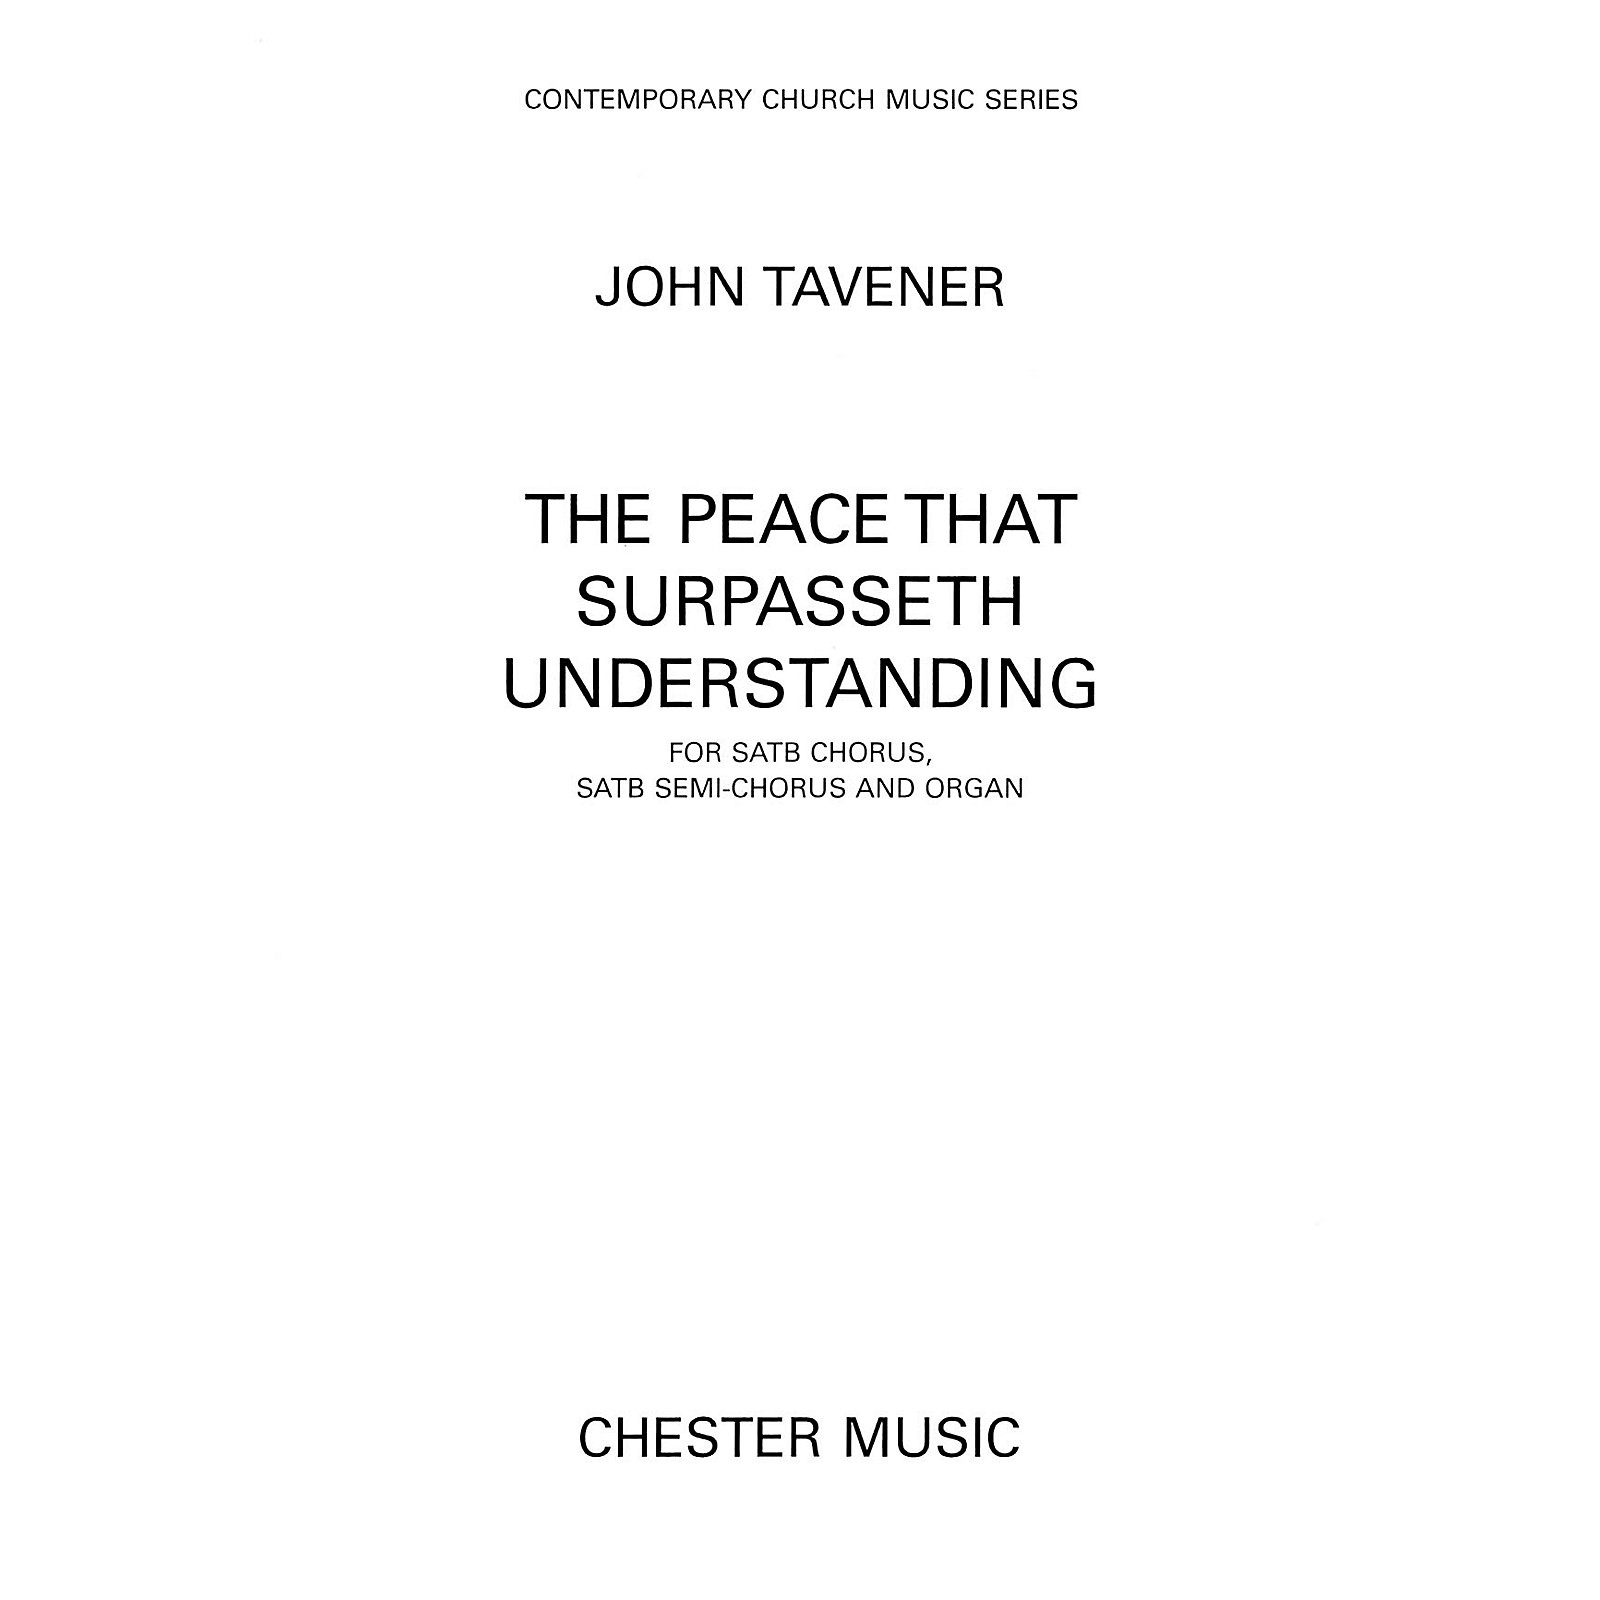 Hal Leonard The Peace That Surpasseth Understanding For Satb Chorussatb Semi-chorus And Organ by John Tavener